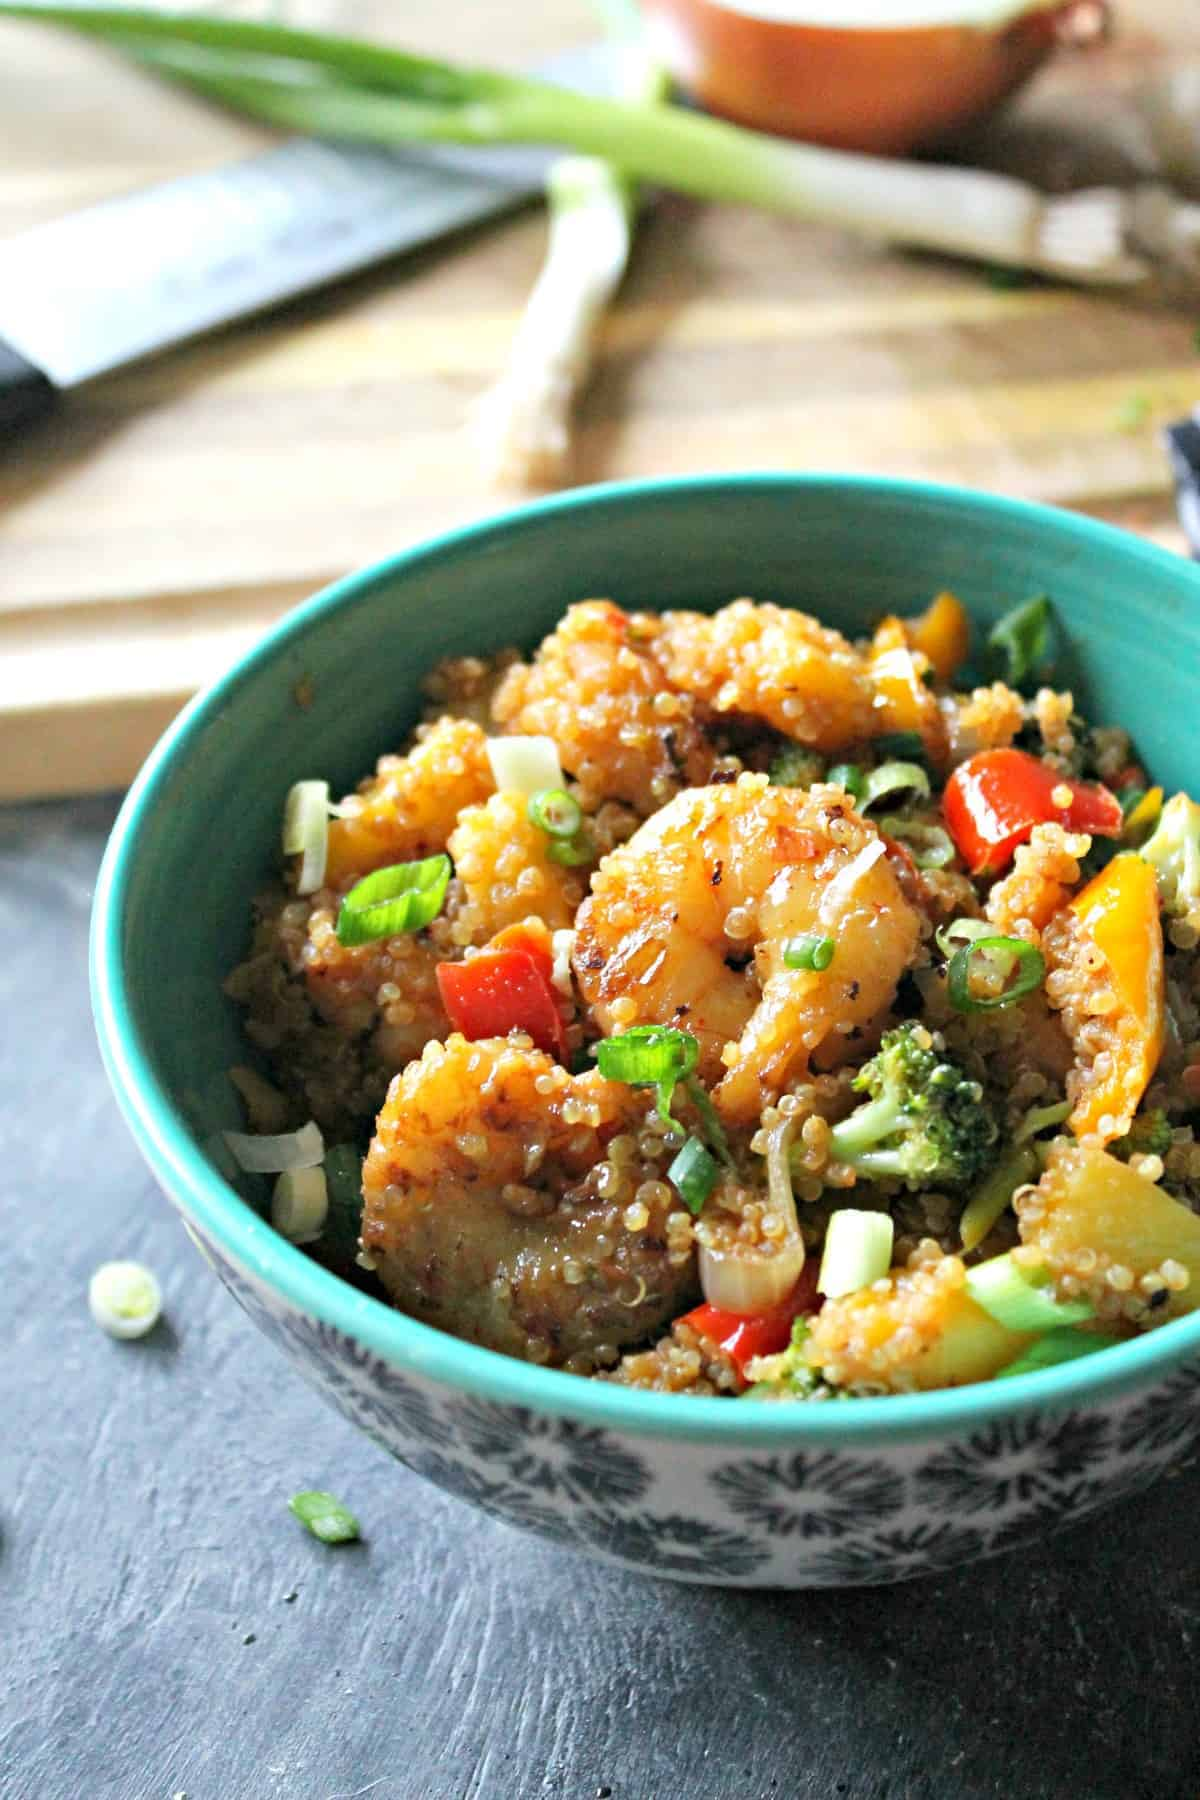 Pineapple Shrimp Quinoa Stir Fry Bowls! Minimal work and so much flavor; these sweet and spicy bowls will become your favorite healthful dish when you need a quick, nutritious dinner!